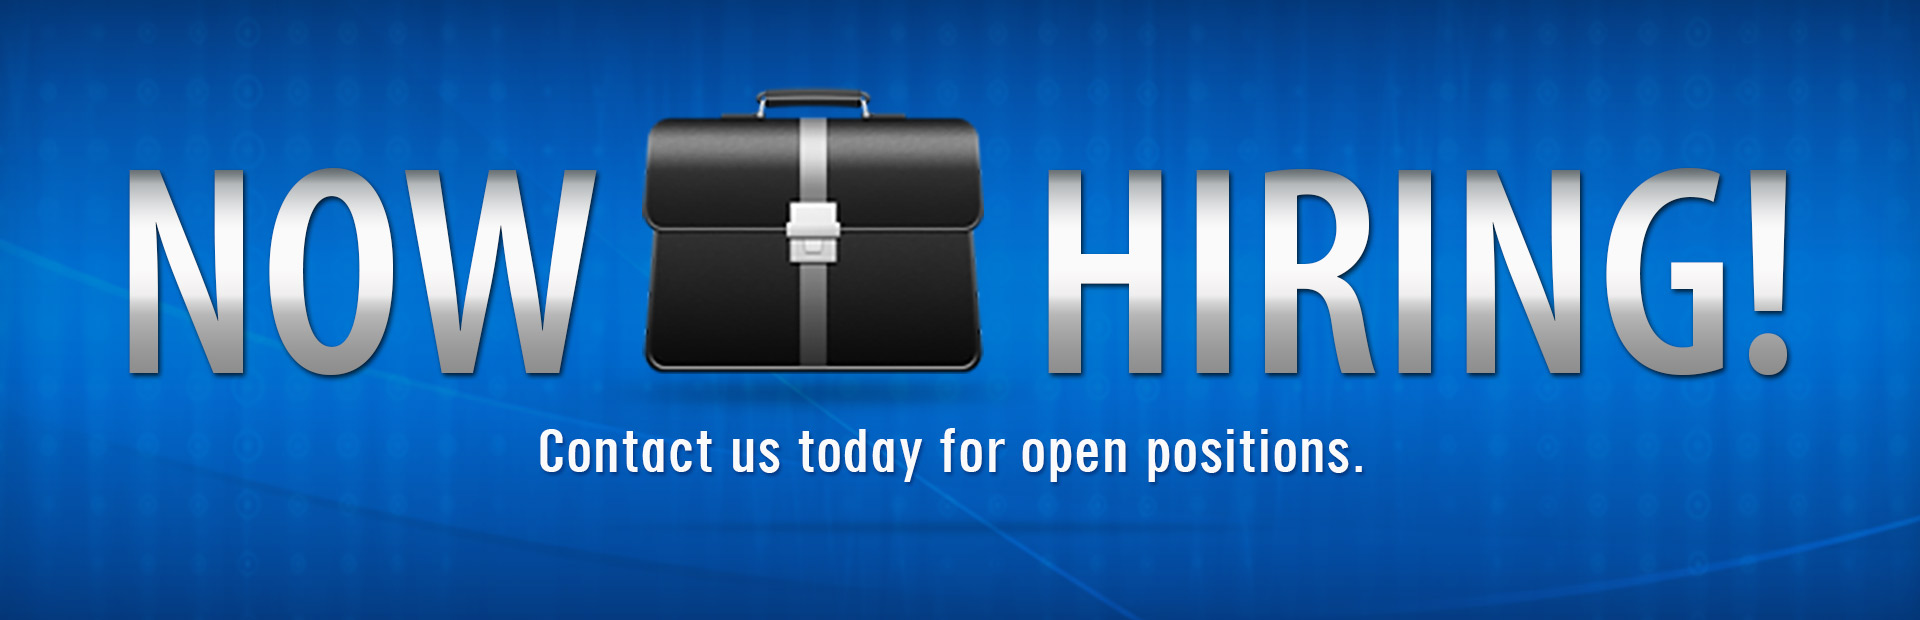 Now Hiring: Contact us today for open positions.